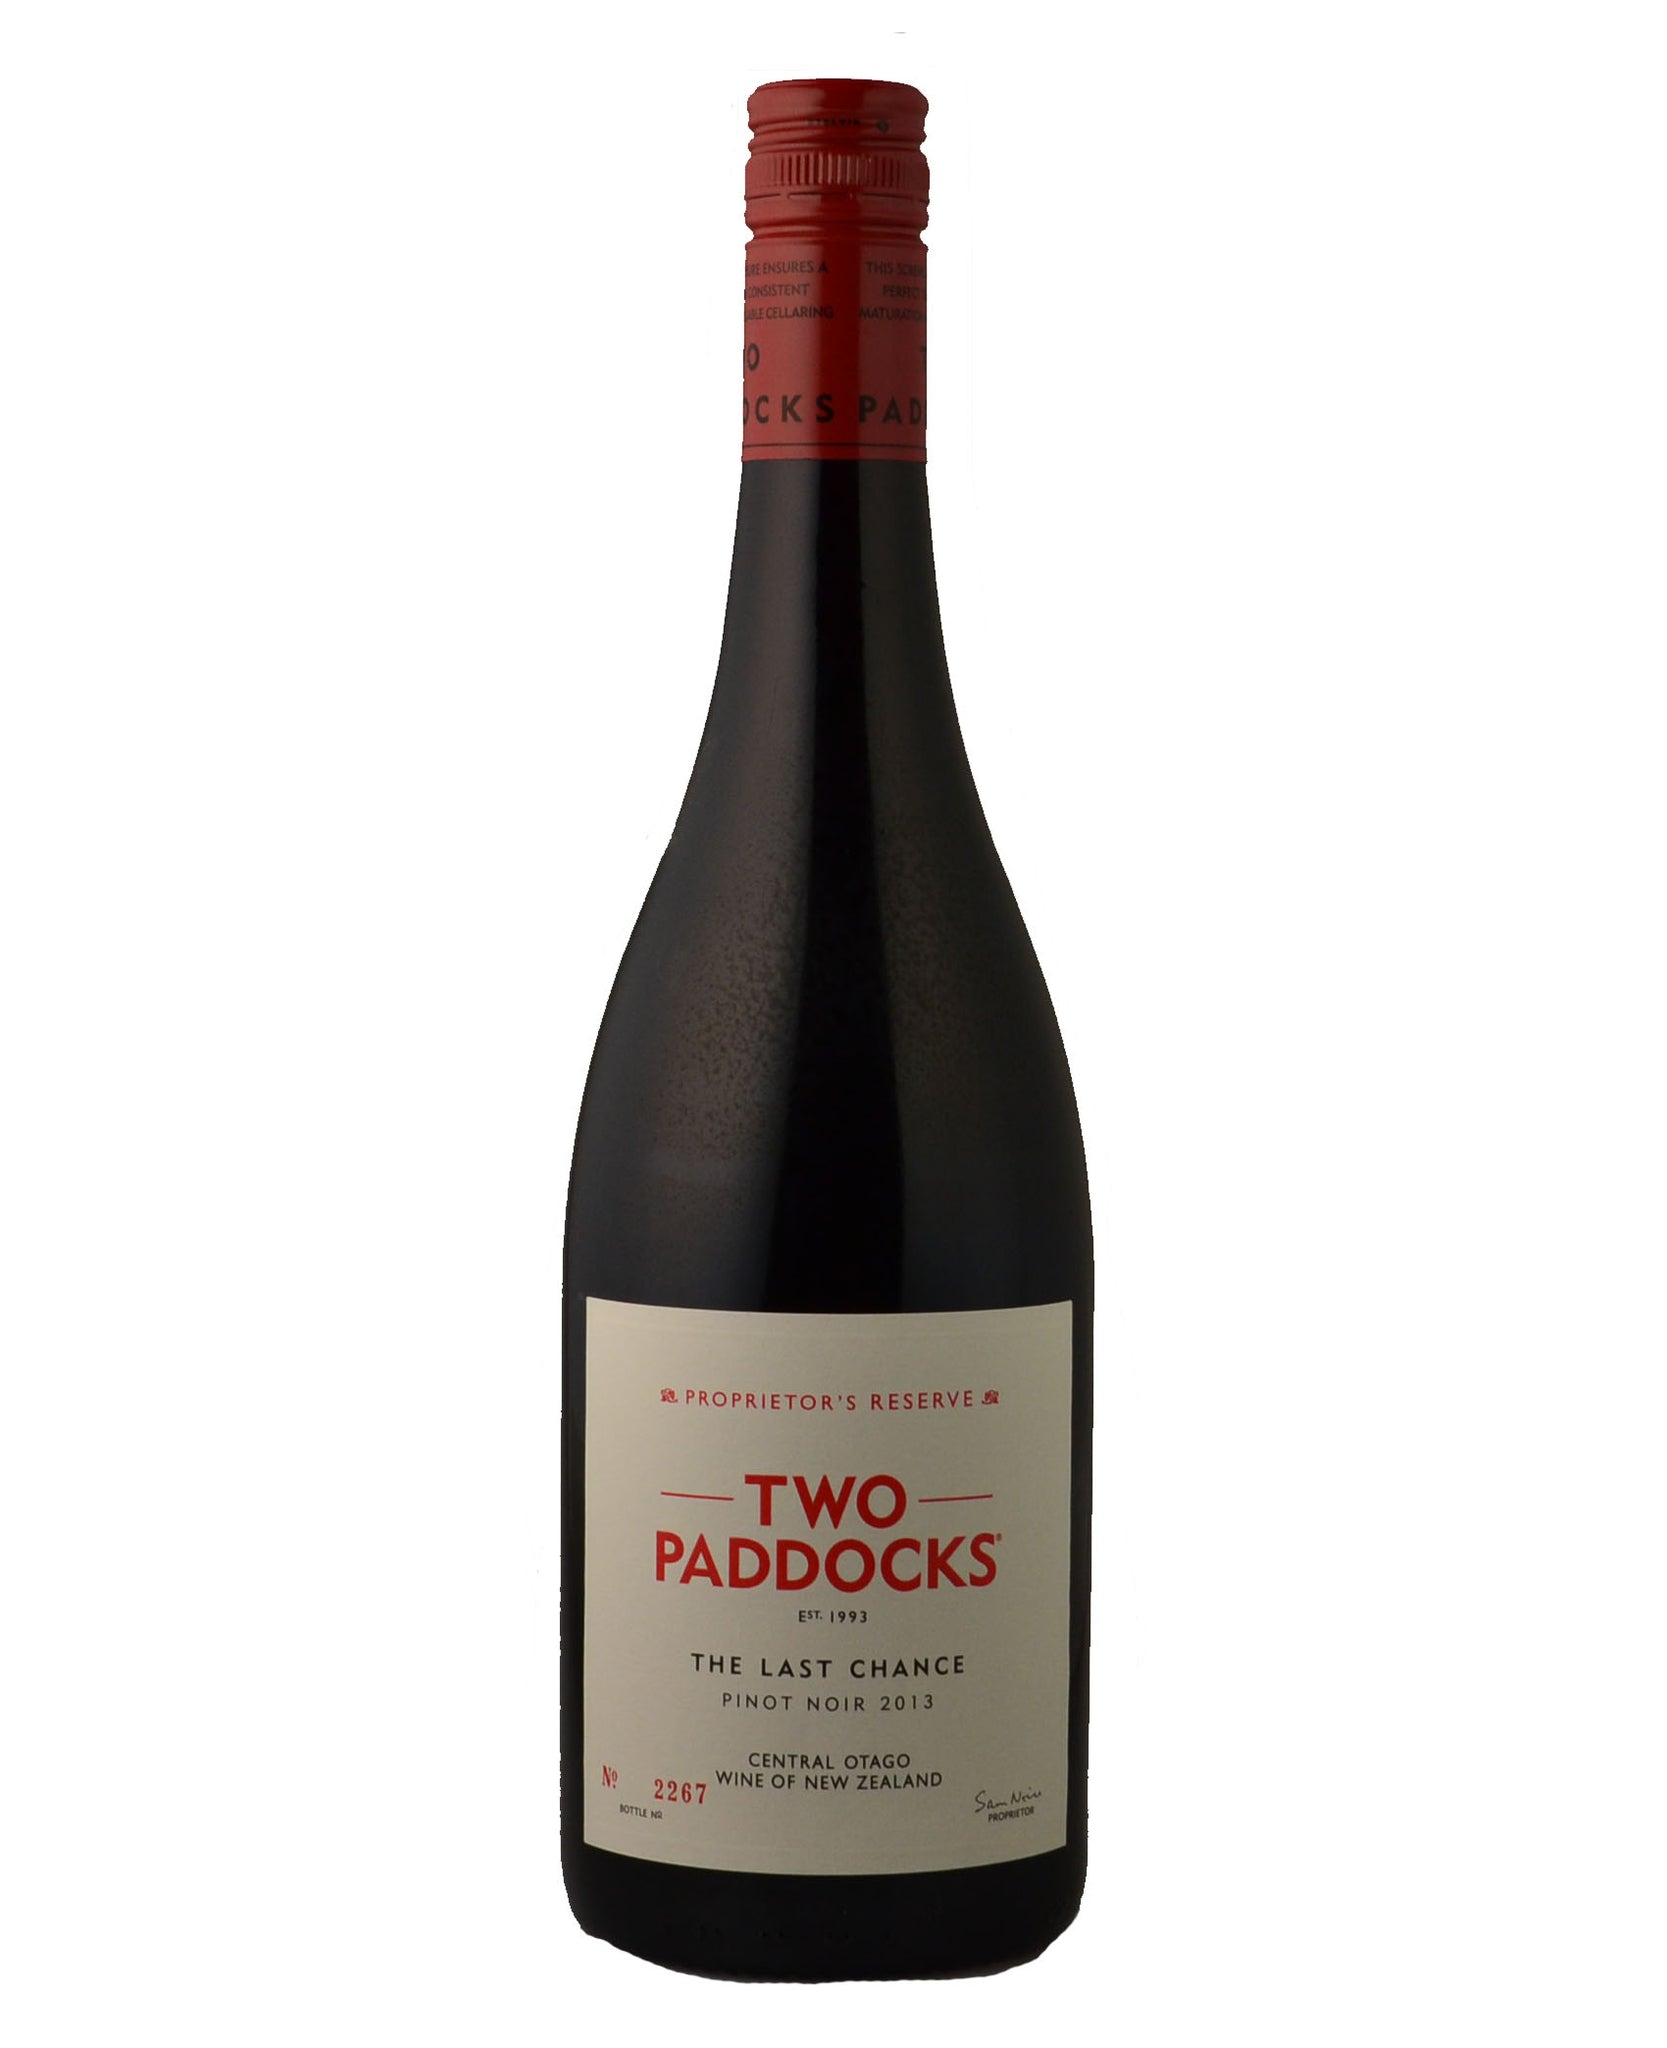 Two Paddocks - The Last Chance Pinot Noir 2013